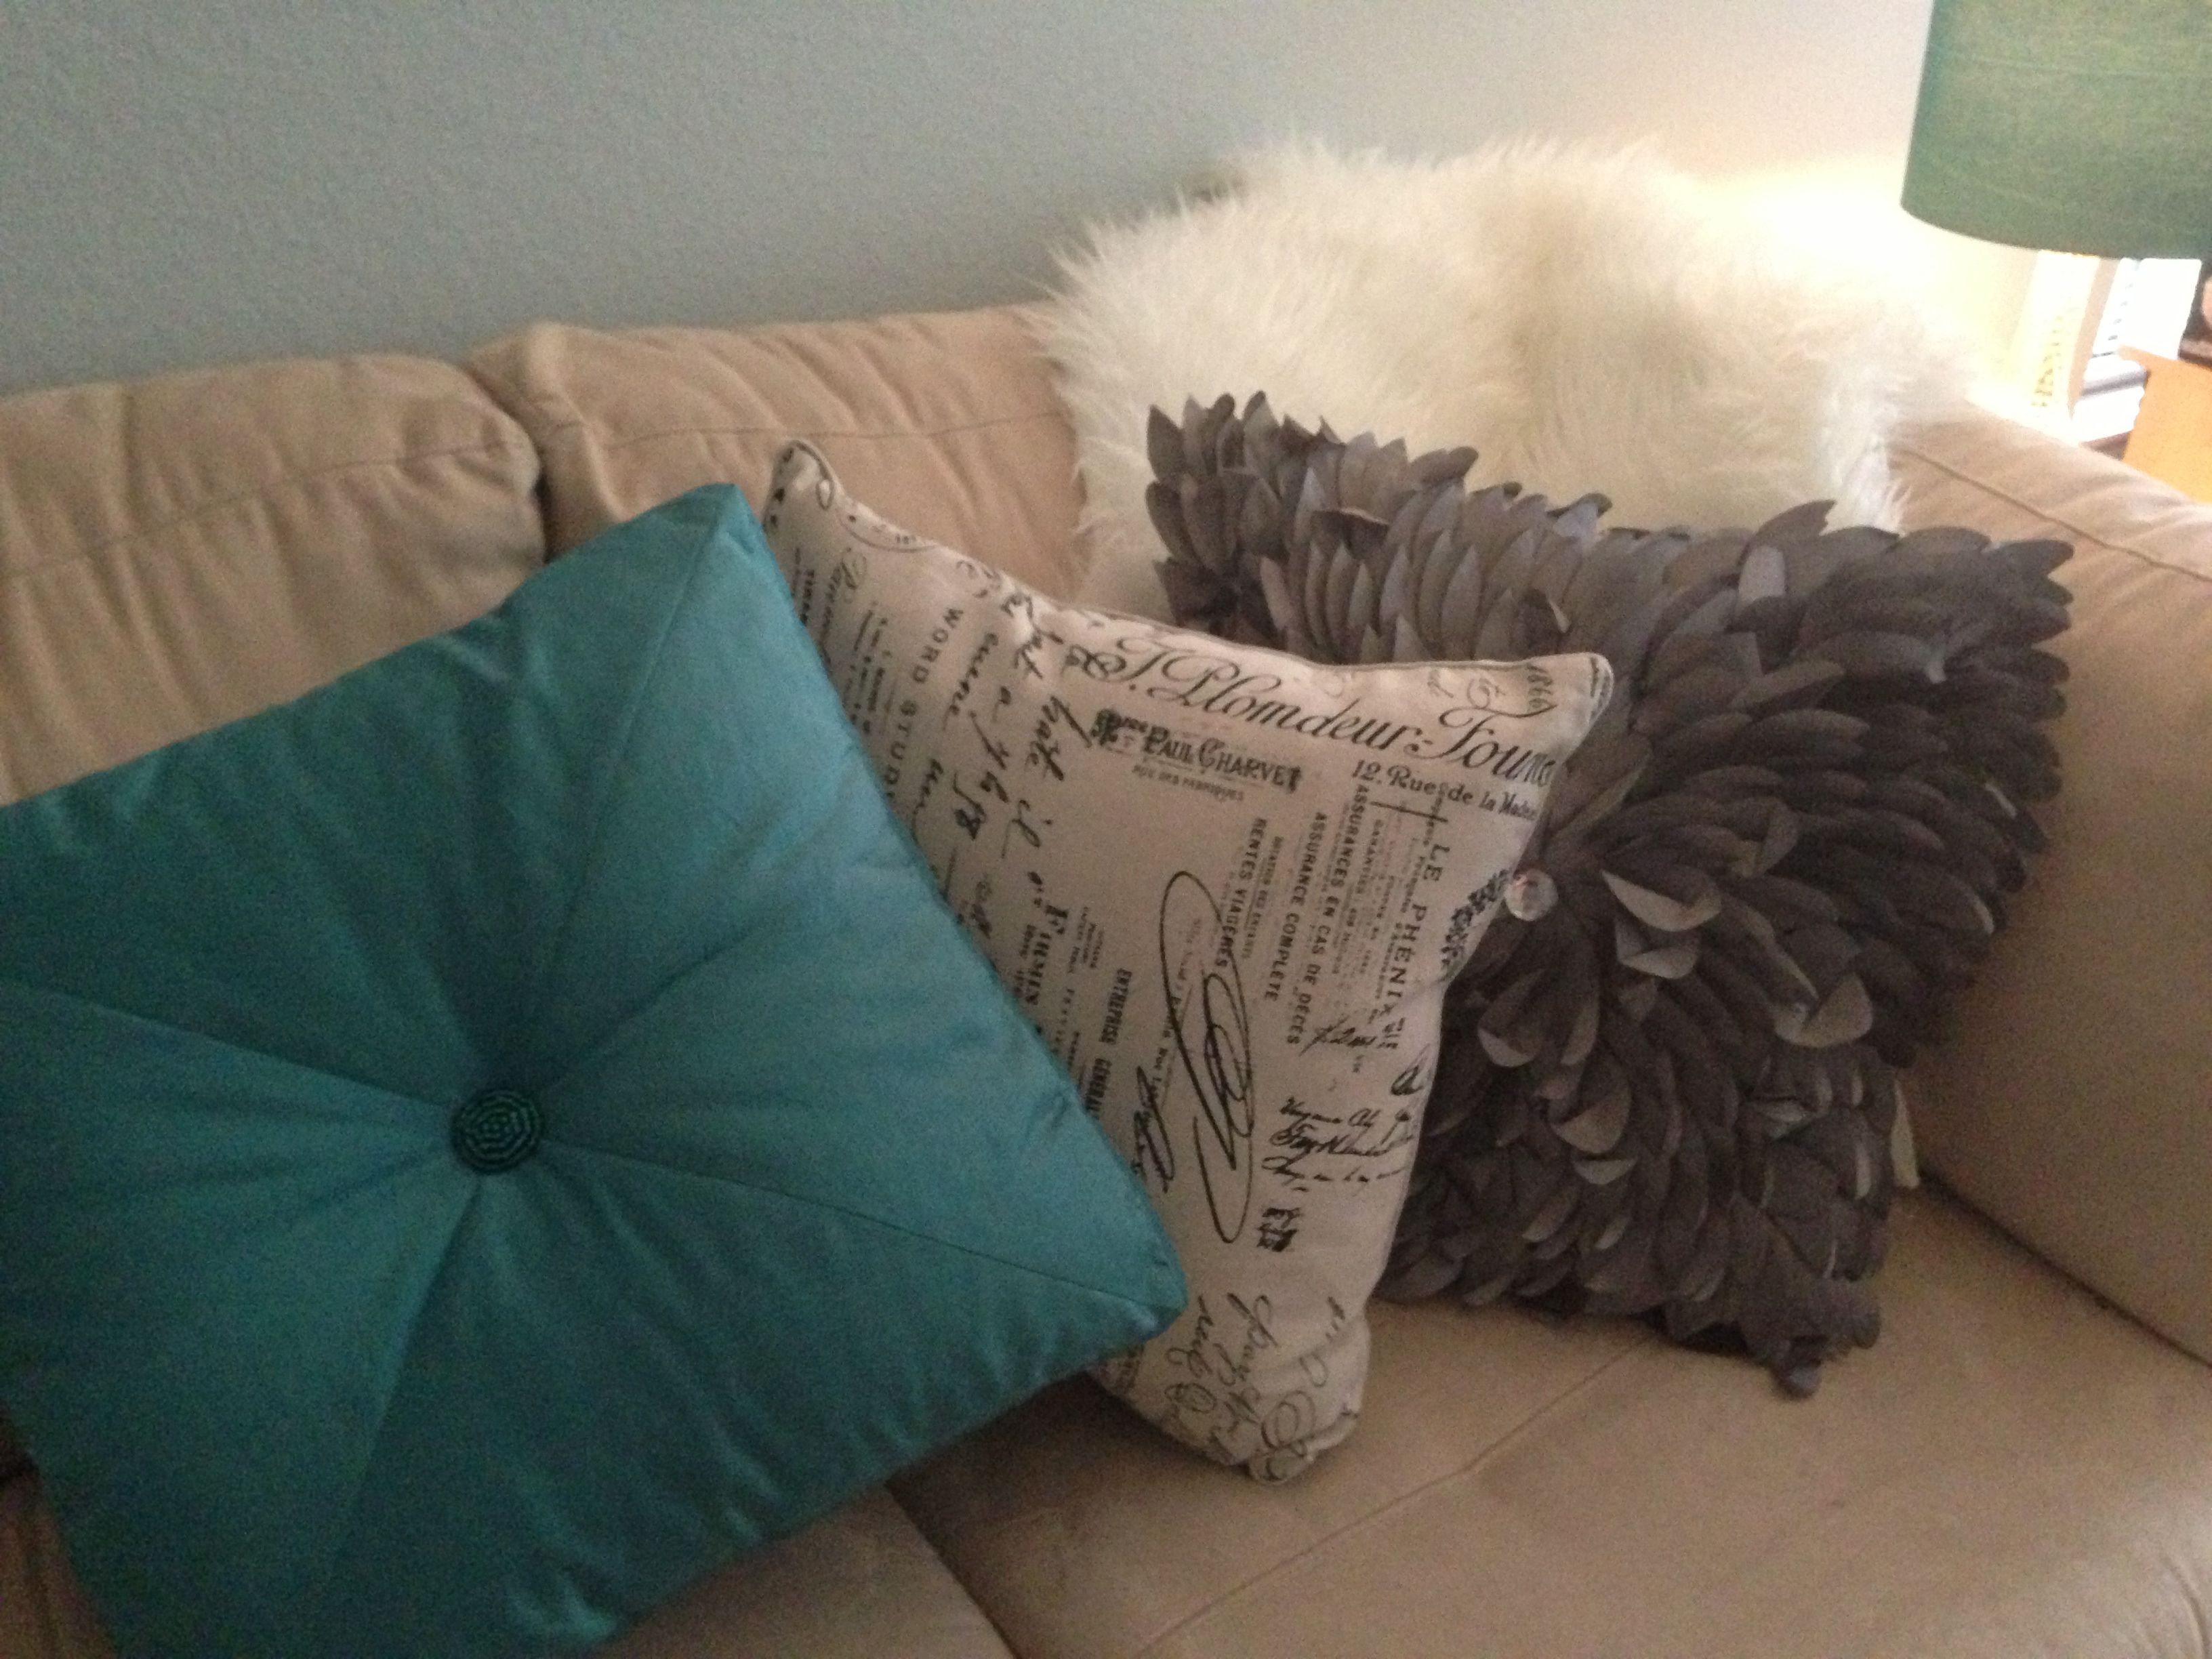 fuzzy sofa karlstad sleeper review throw pillows on cream couch teal pillow with